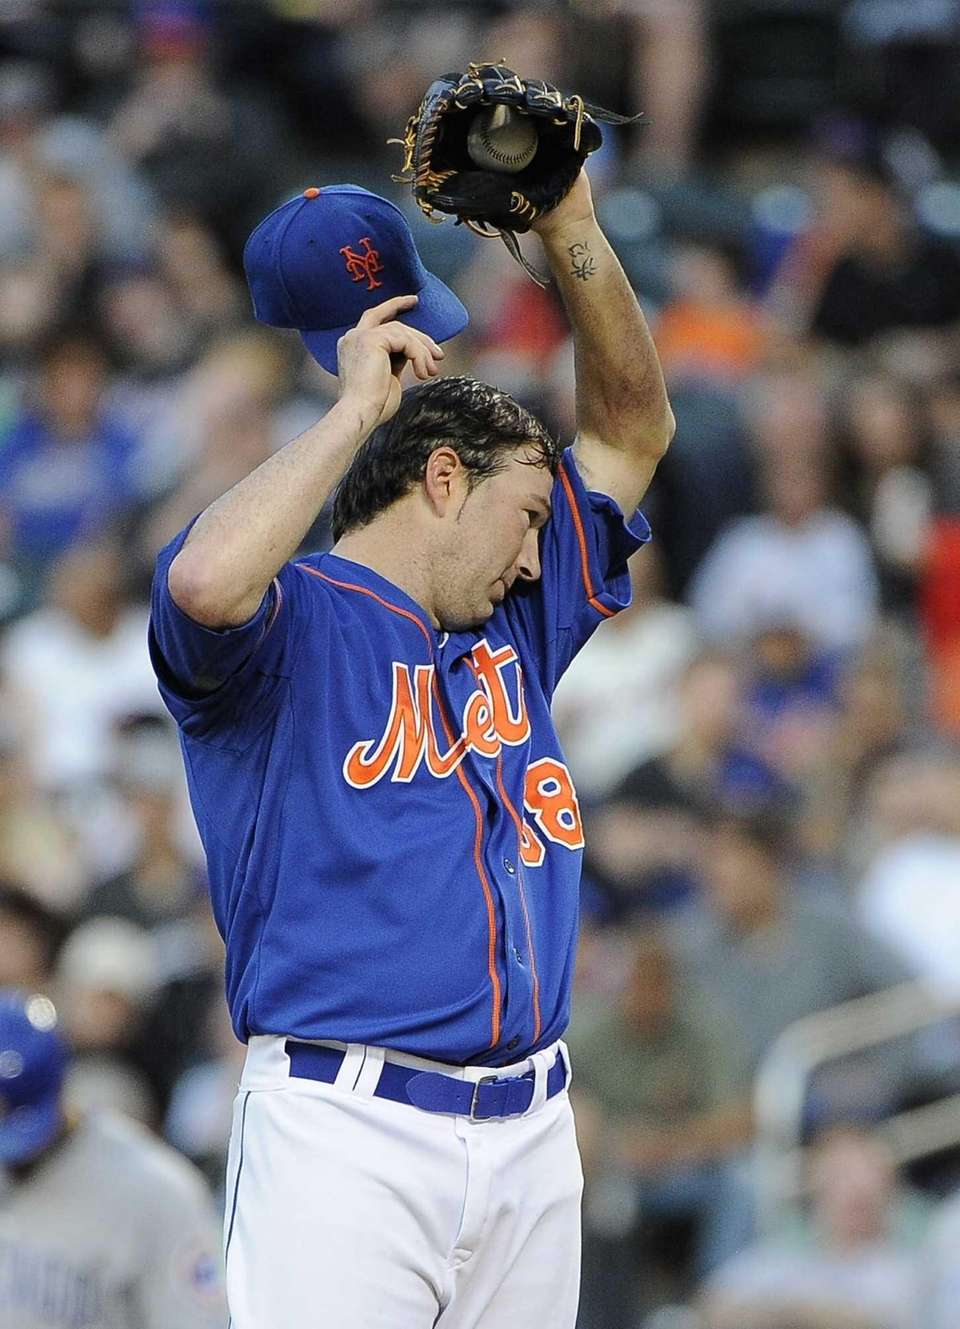 Starting pitcher Shaun Marcum of the Mets reacts